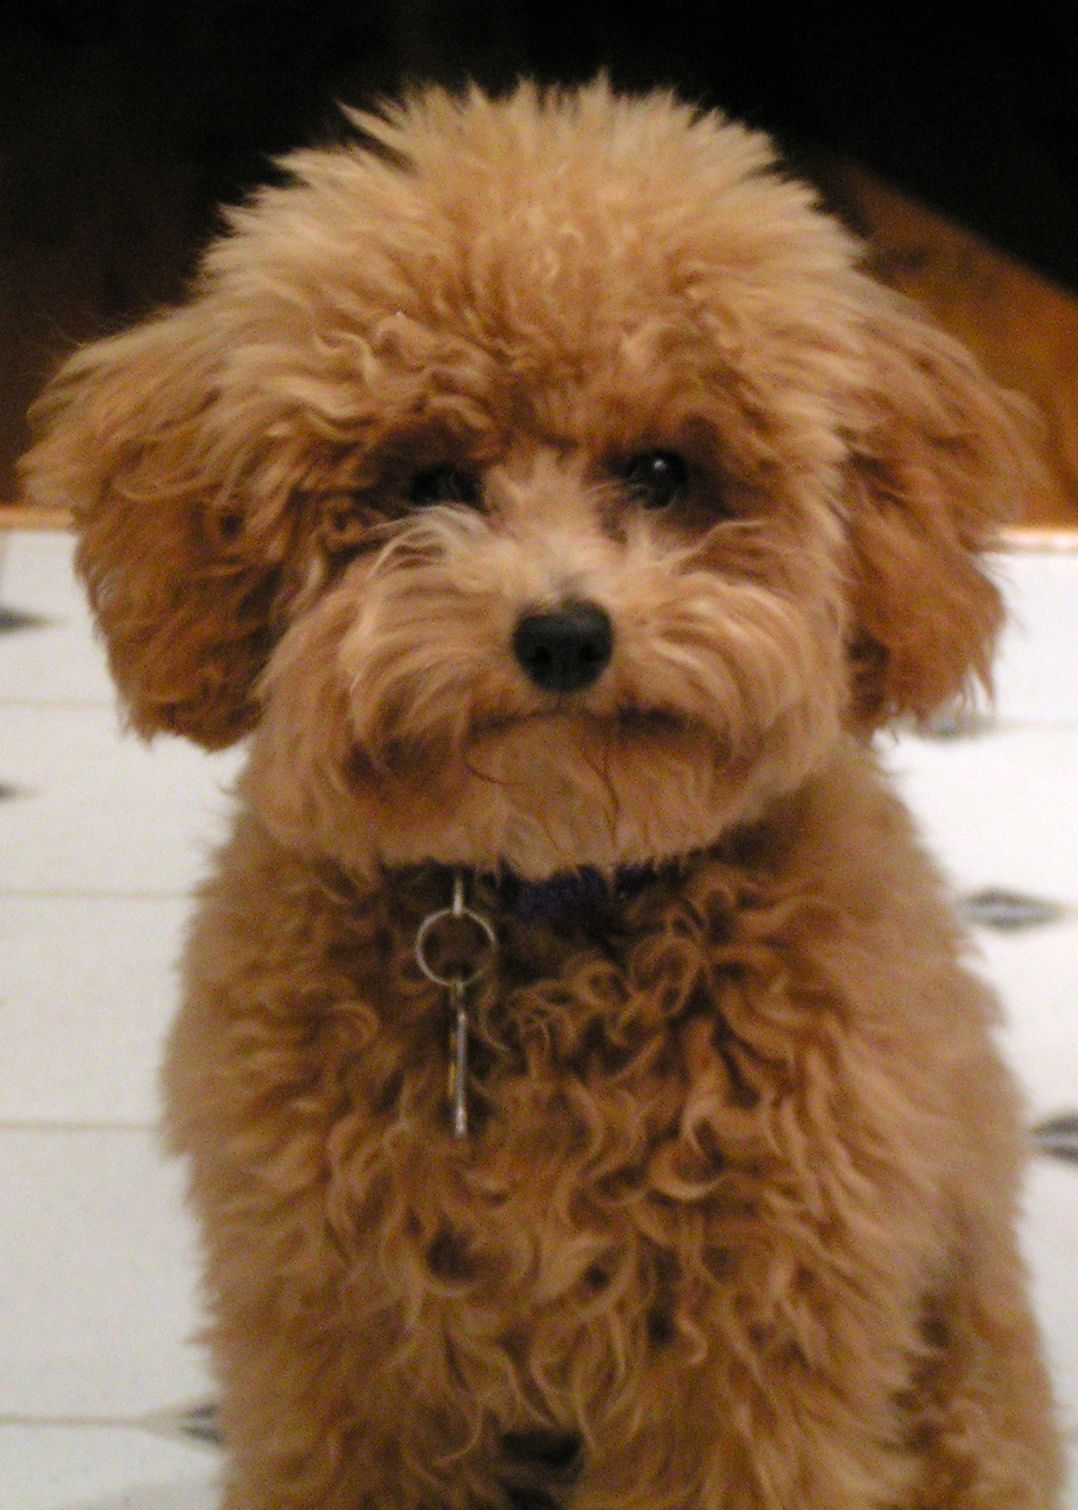 Toy Poodle Haircuts – How to Choose the Best Style For Your Toy Poodle